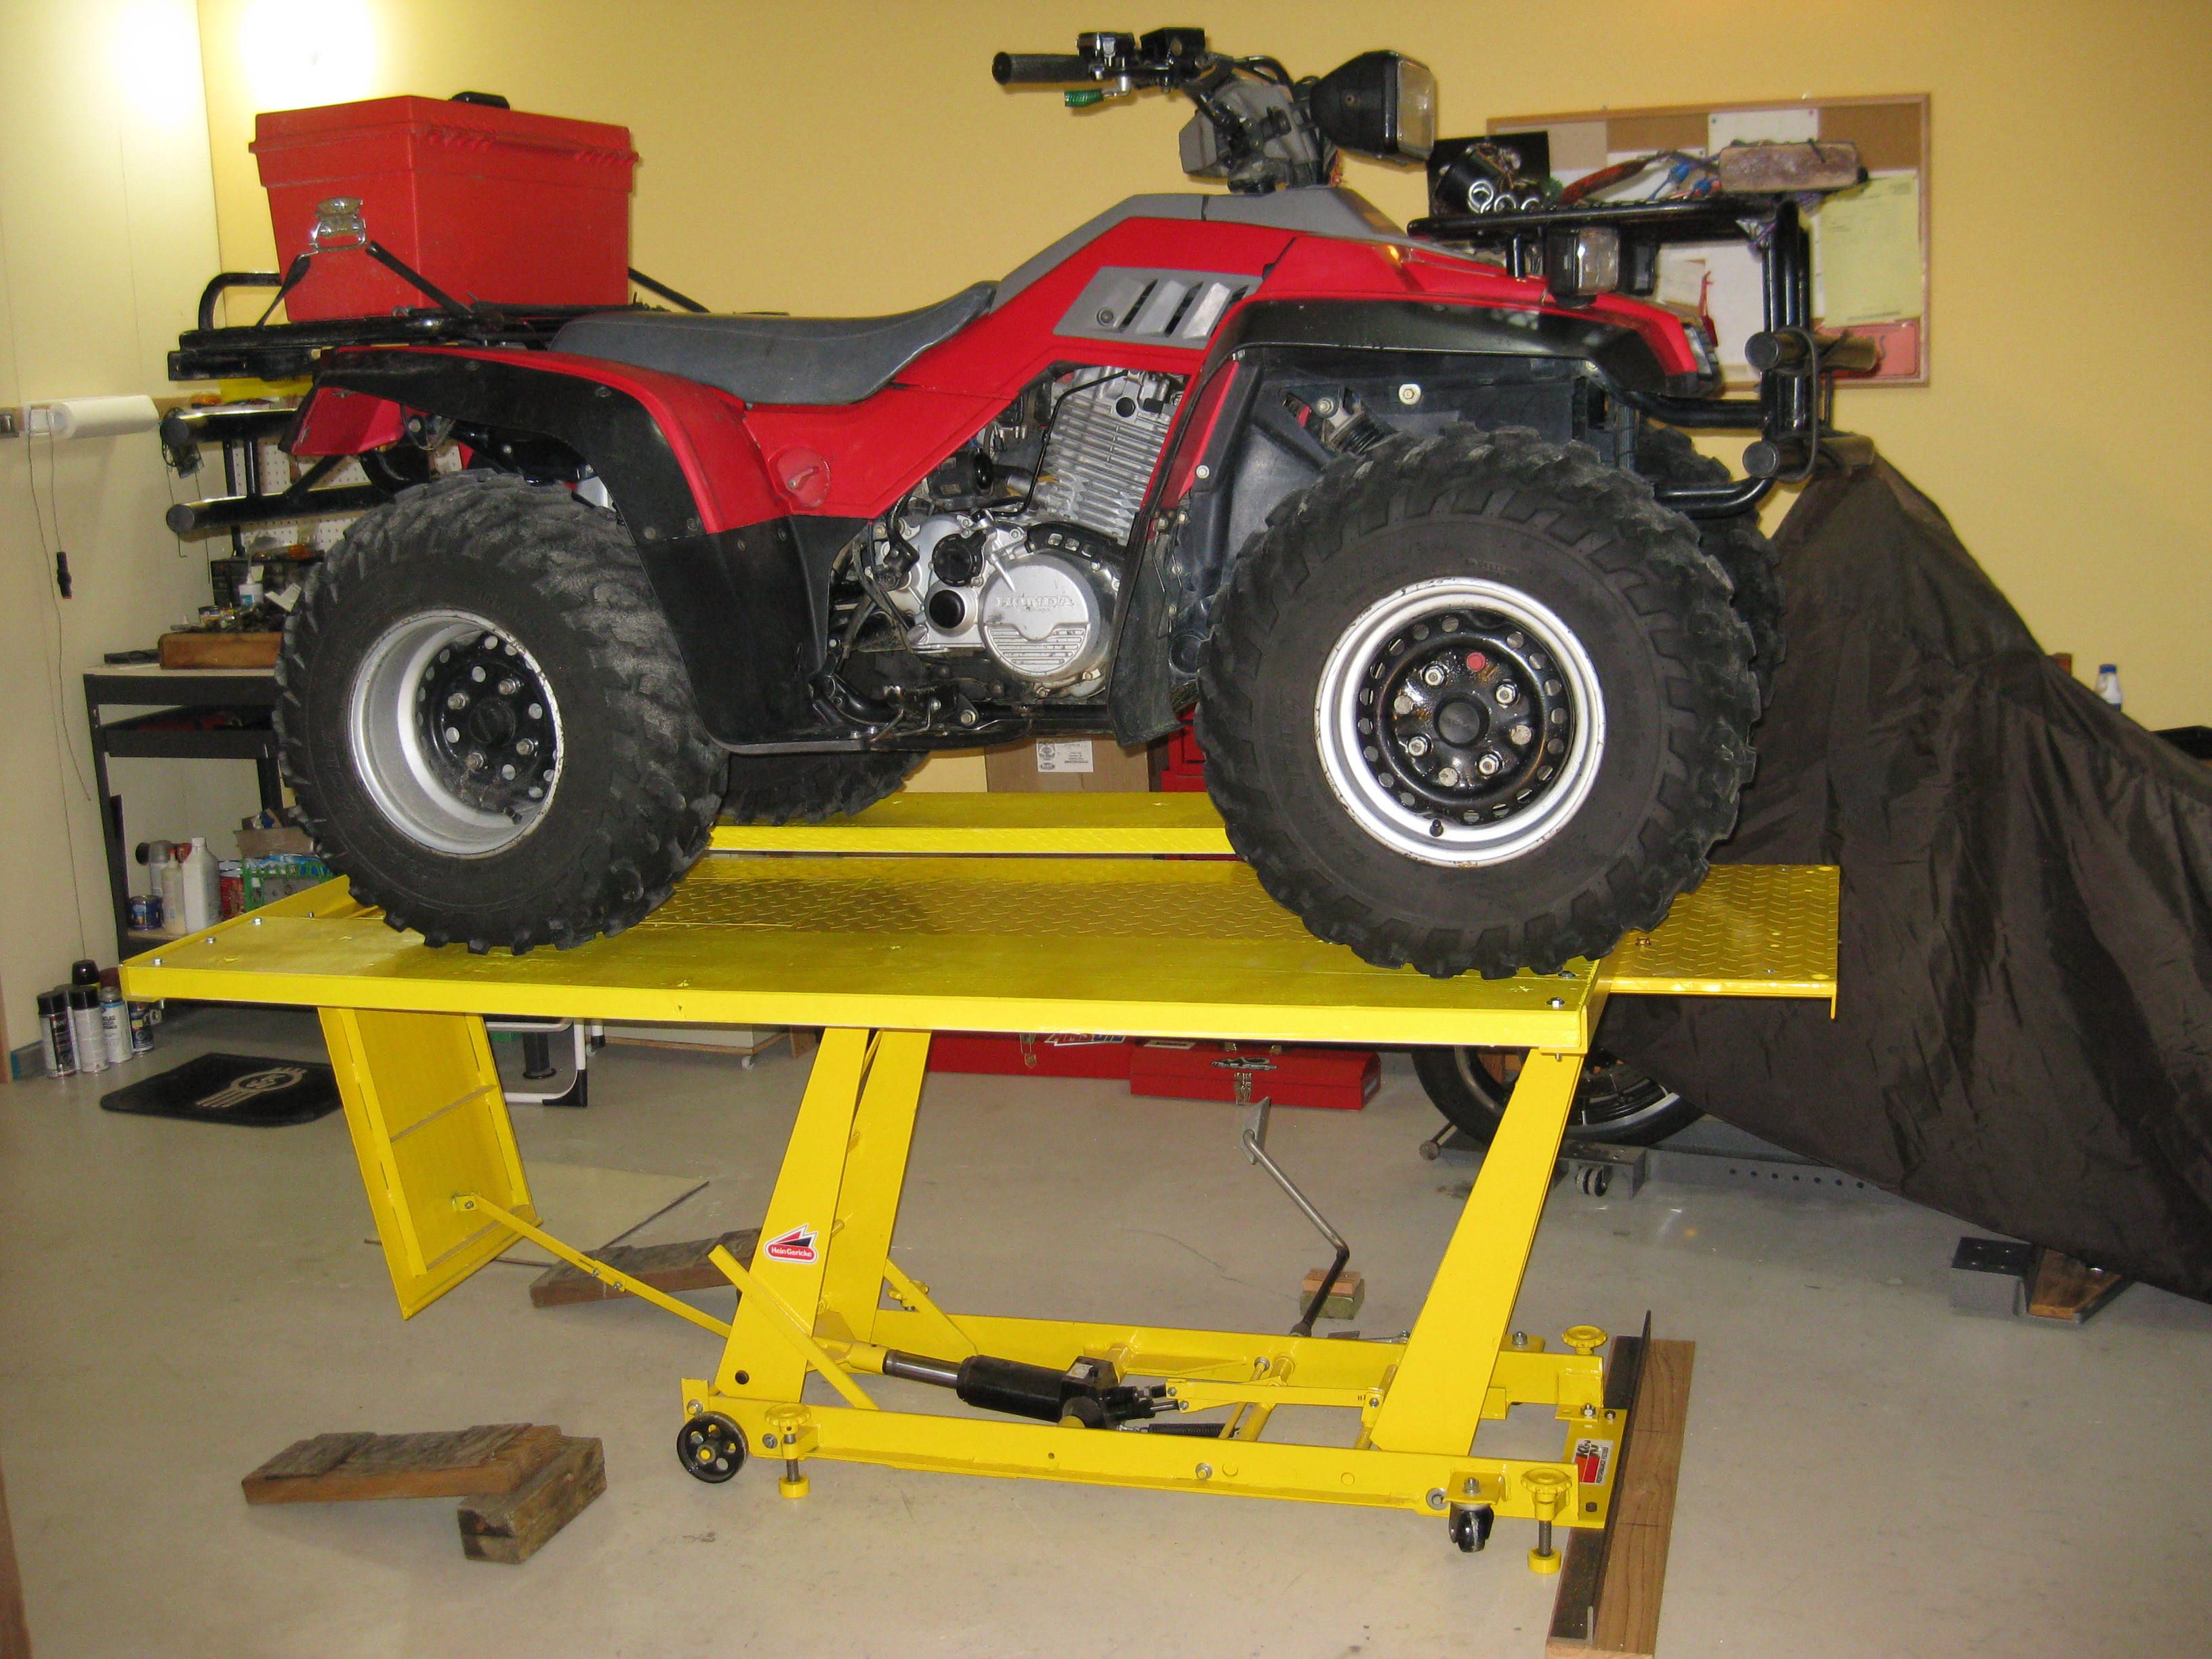 Harbor Freight Mower : Homemade lawn mower lift table ftempo